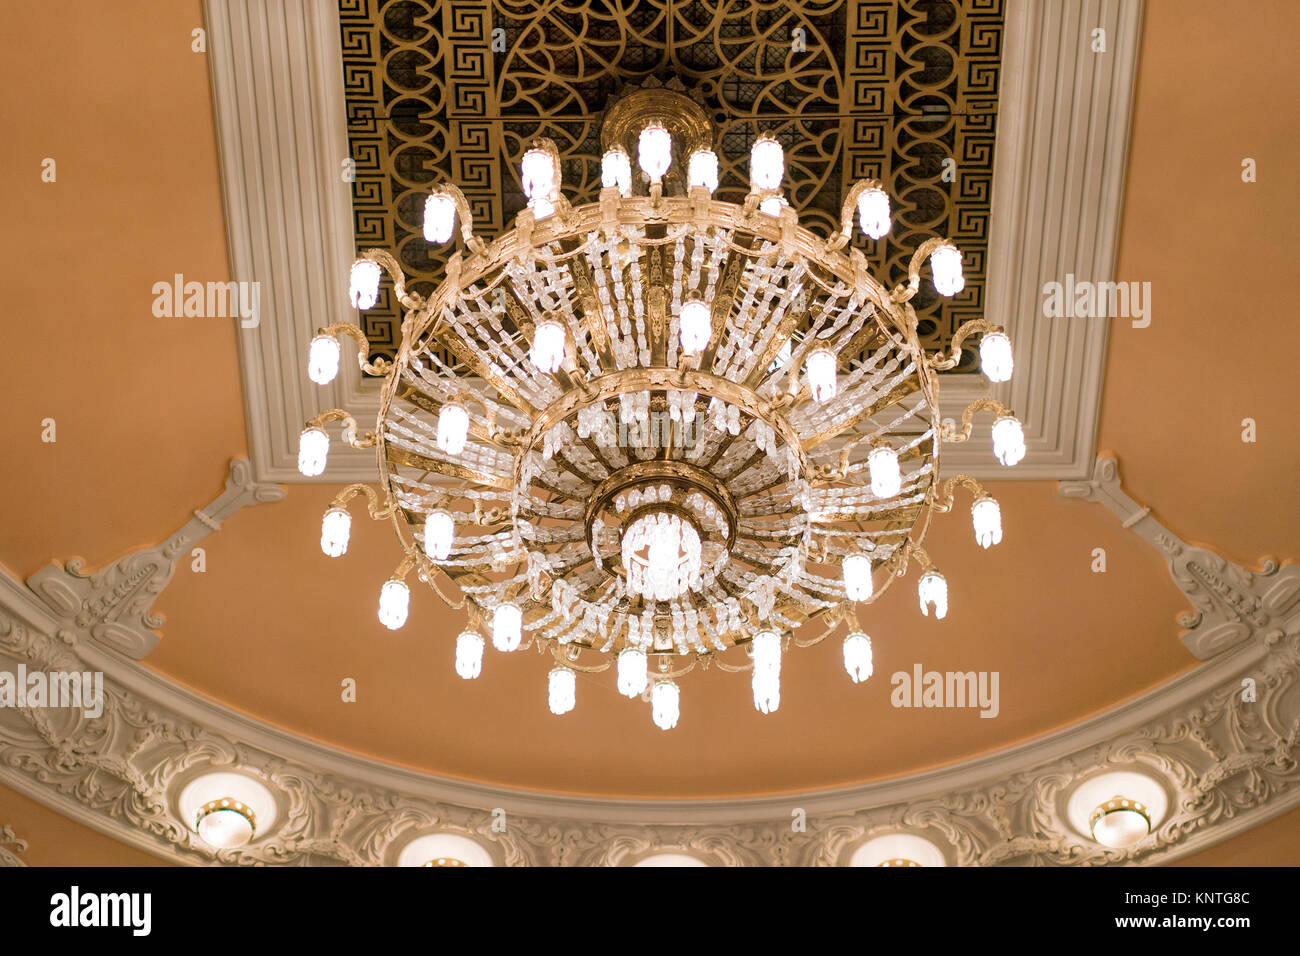 Chandelier on decoarted ceiling of a ballroom Stock Photo